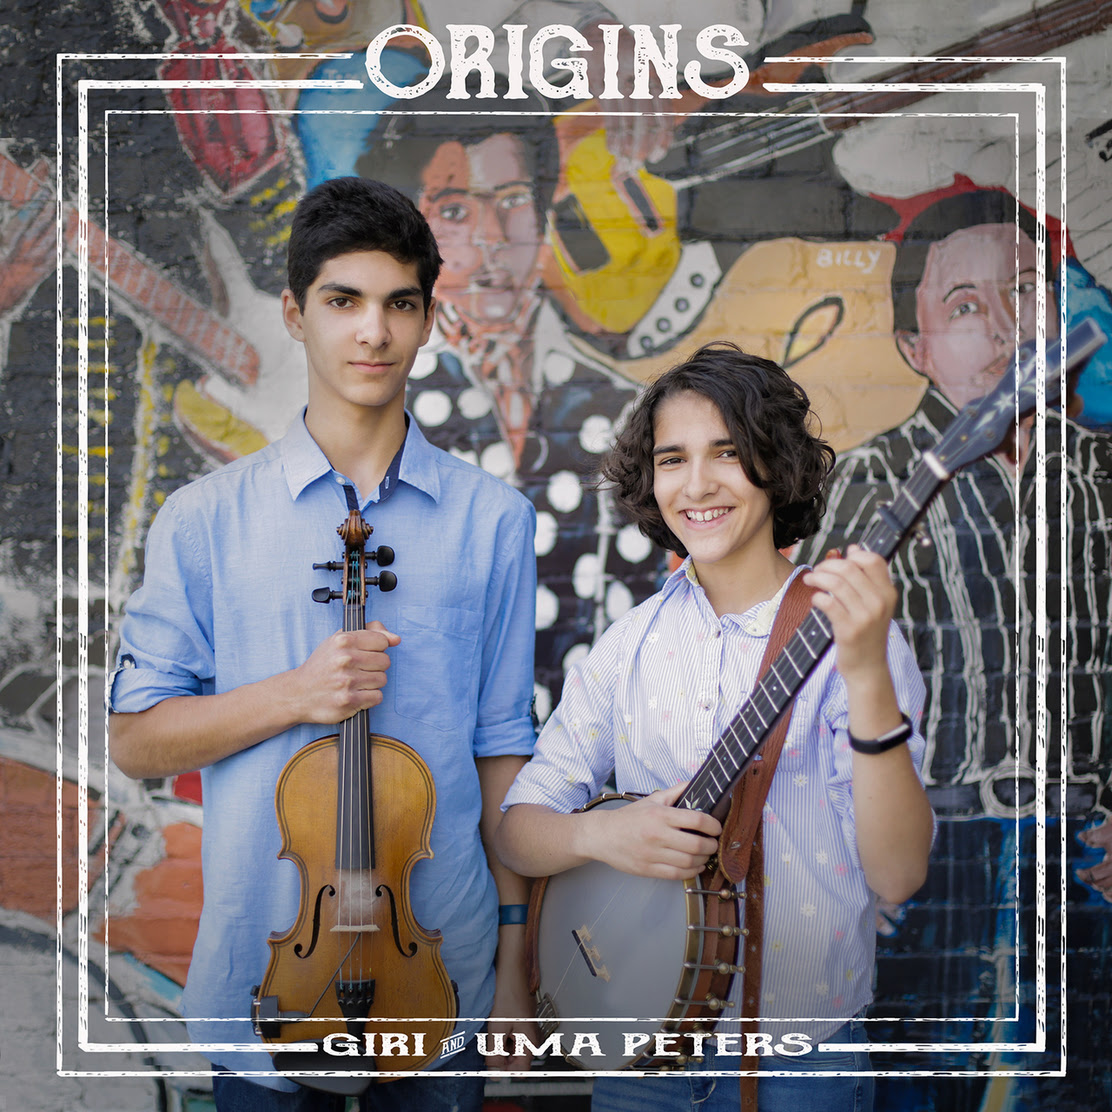 Giri & Uma Peters Release 'Origins' May 31